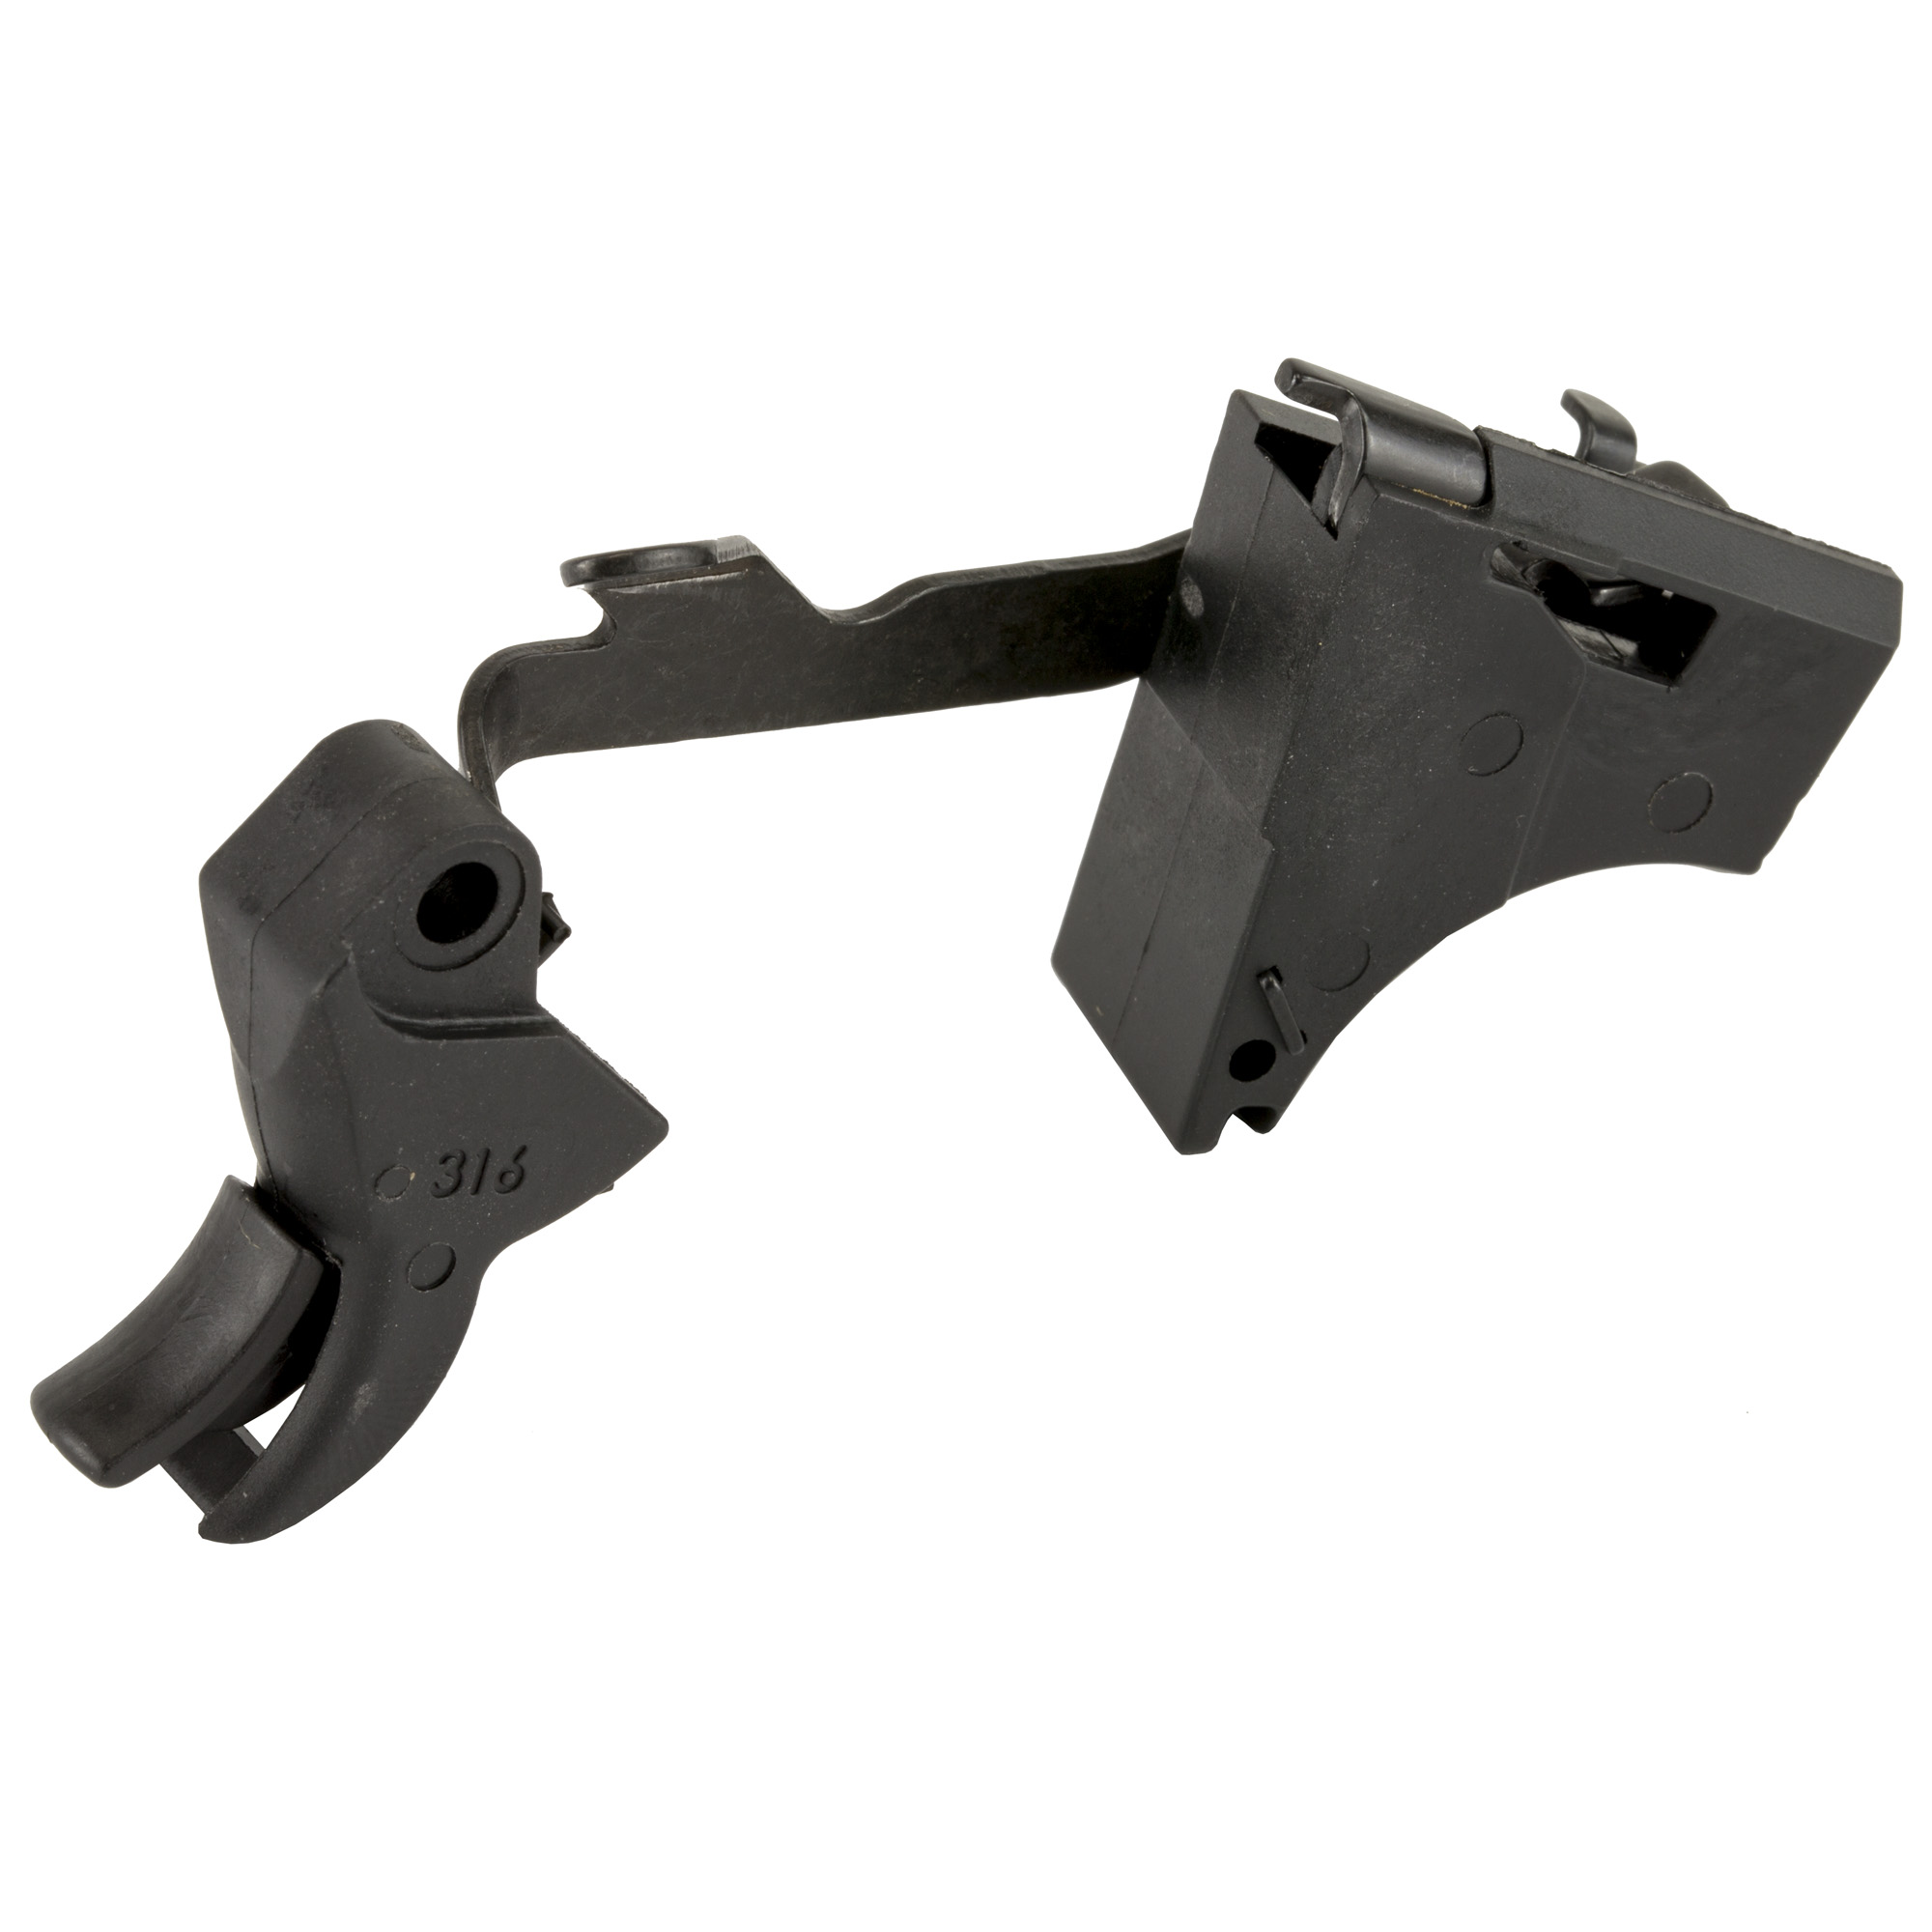 """This trigger kit for the FMK 9C1 Gen 2 pistol will provide a short"""" crisp trigger pull and is a factory original replacement part."""